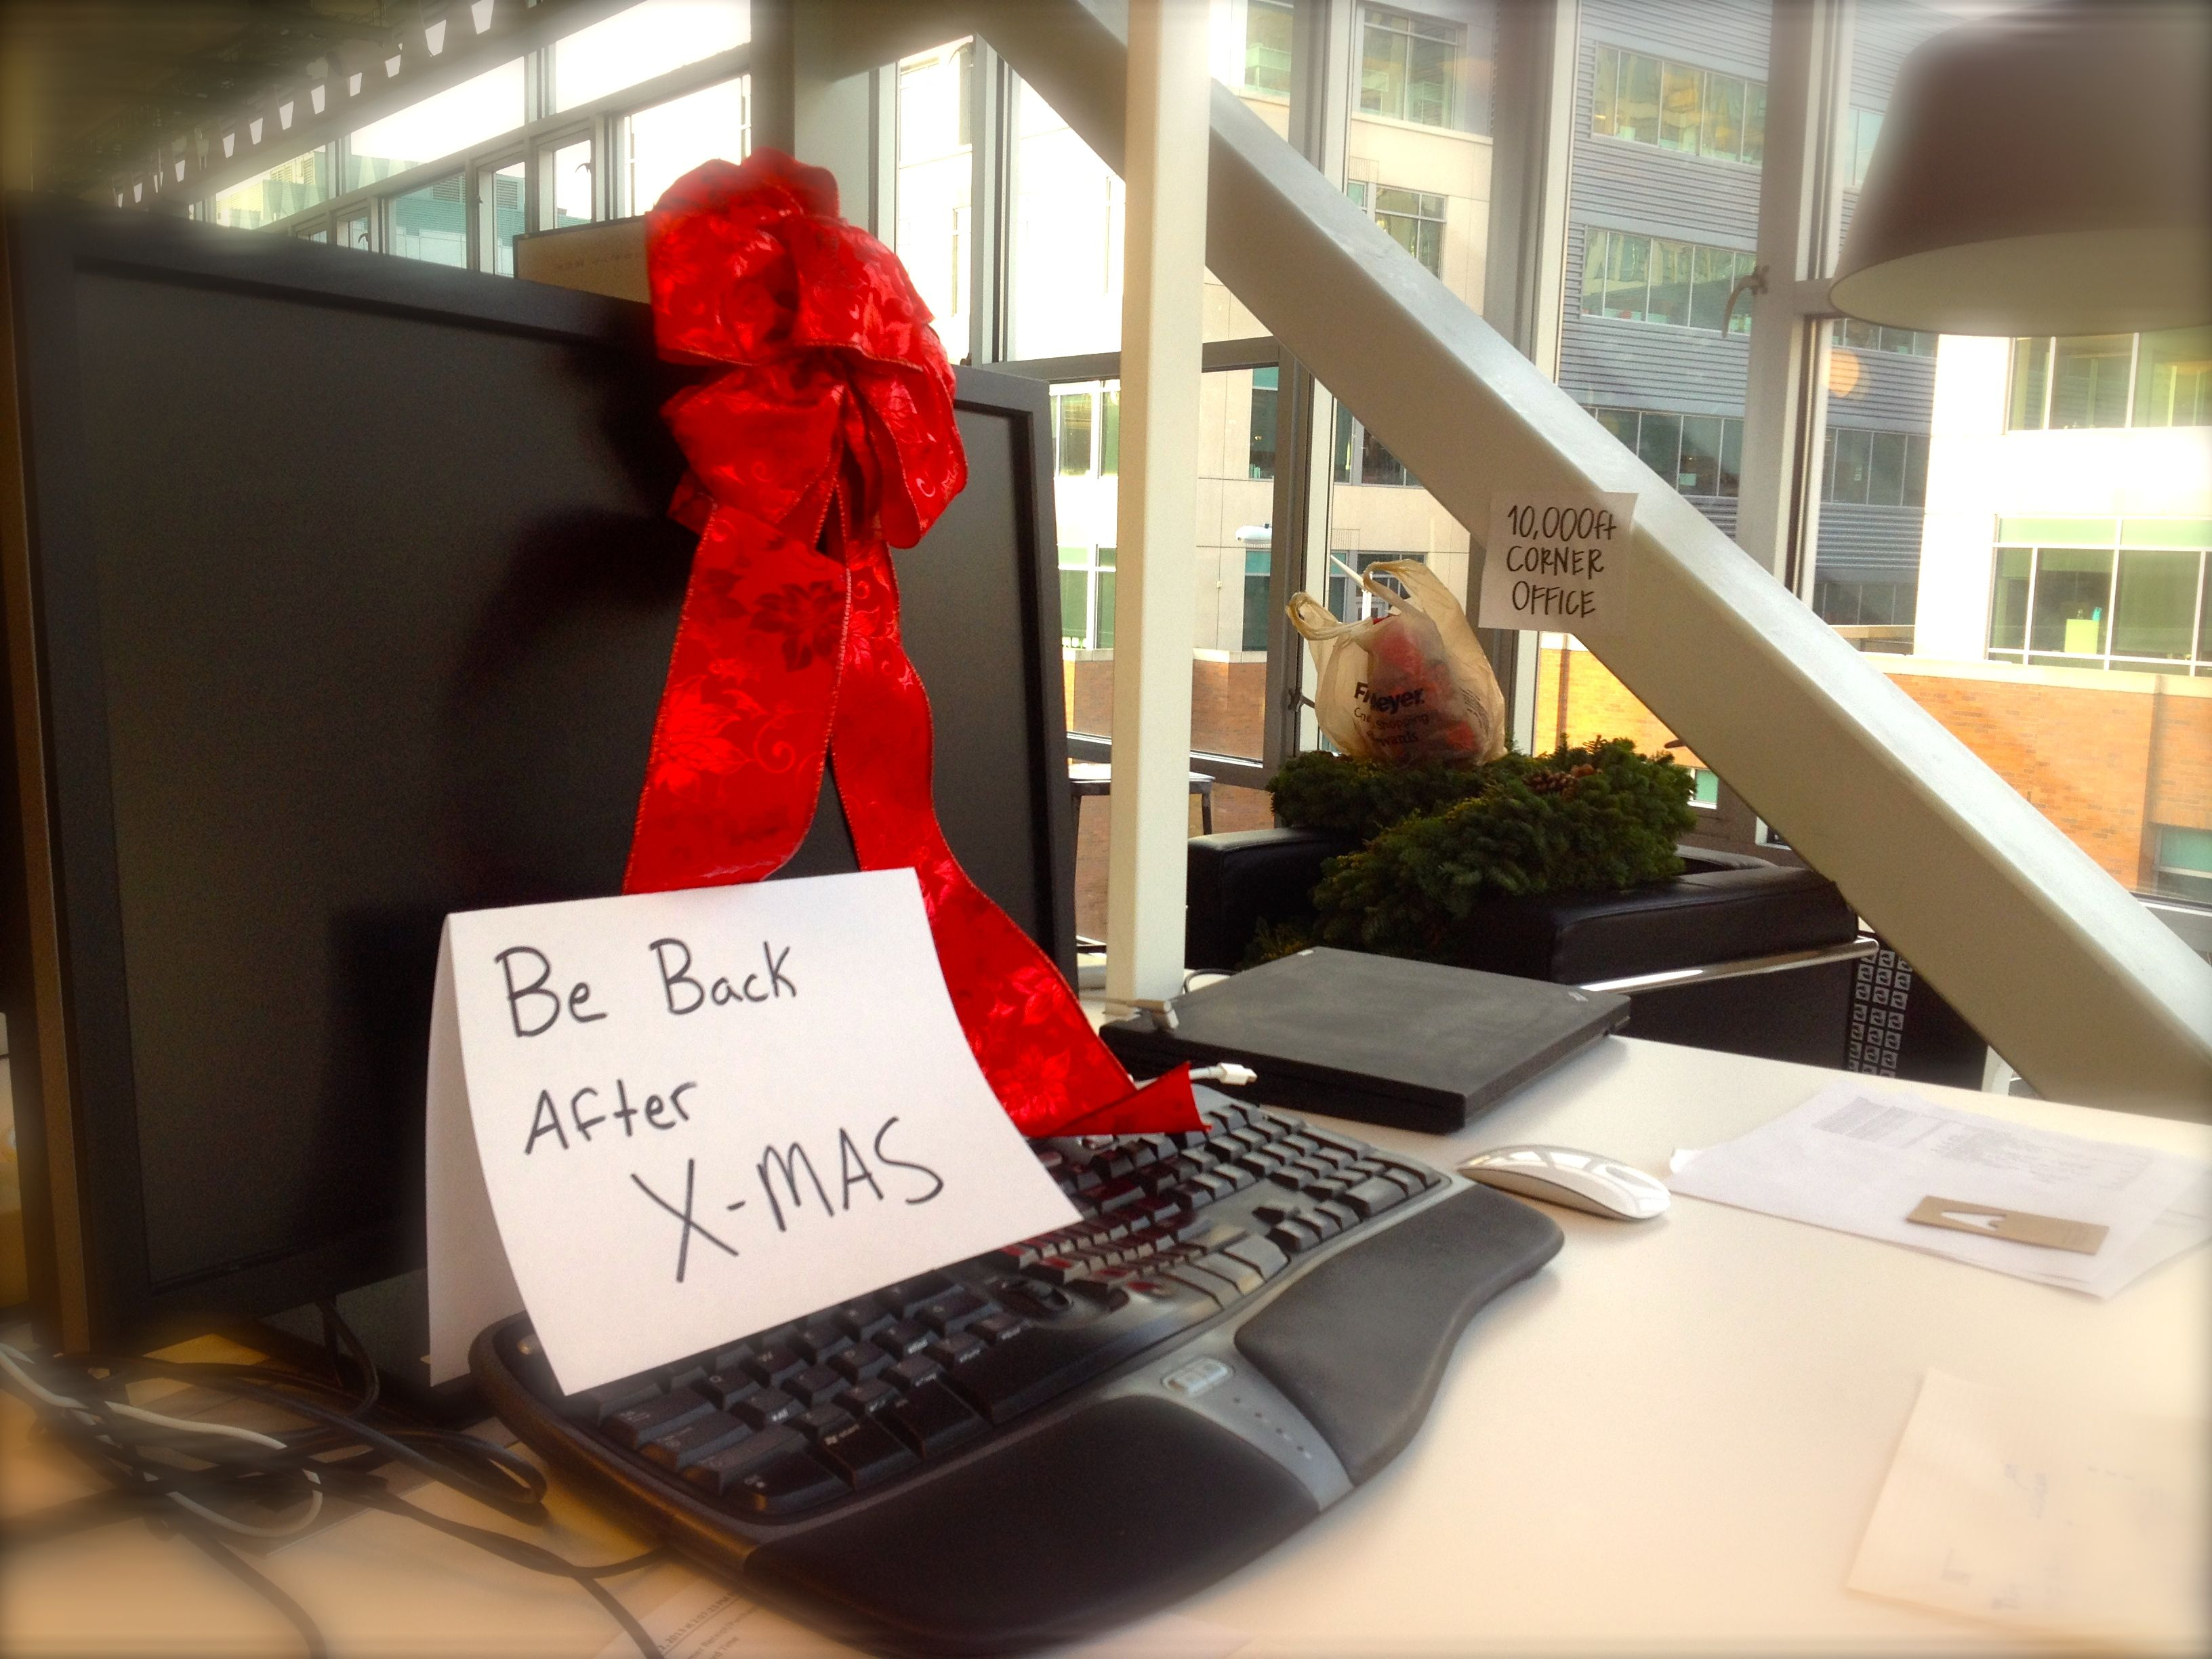 Be back after Christmas desk note